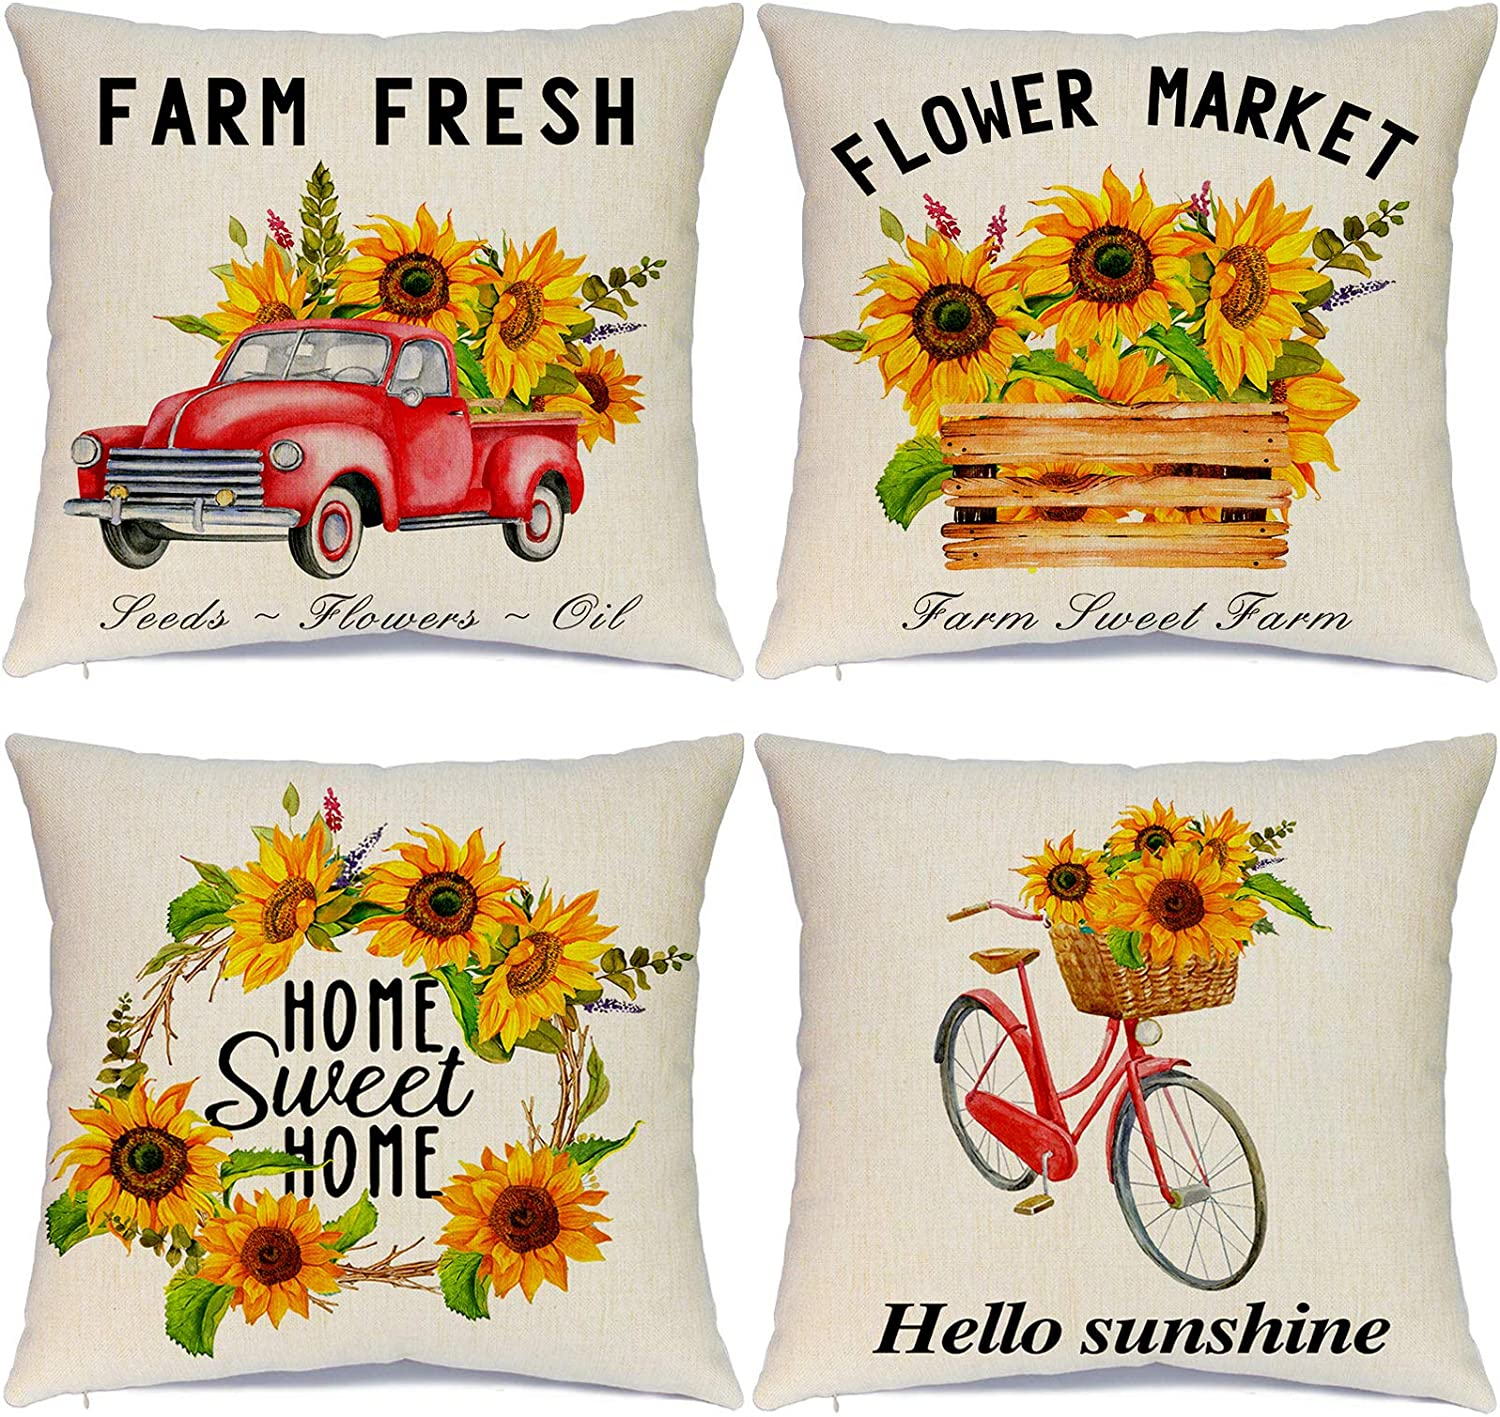 Hlonon Sunflower Summer Pillow Covers 18 x 18 Inch Set of 4 Summer Decorations Vintage Truck Bicycle Farmhouse Linen Pillows Cushion Cover Case for Home Decor